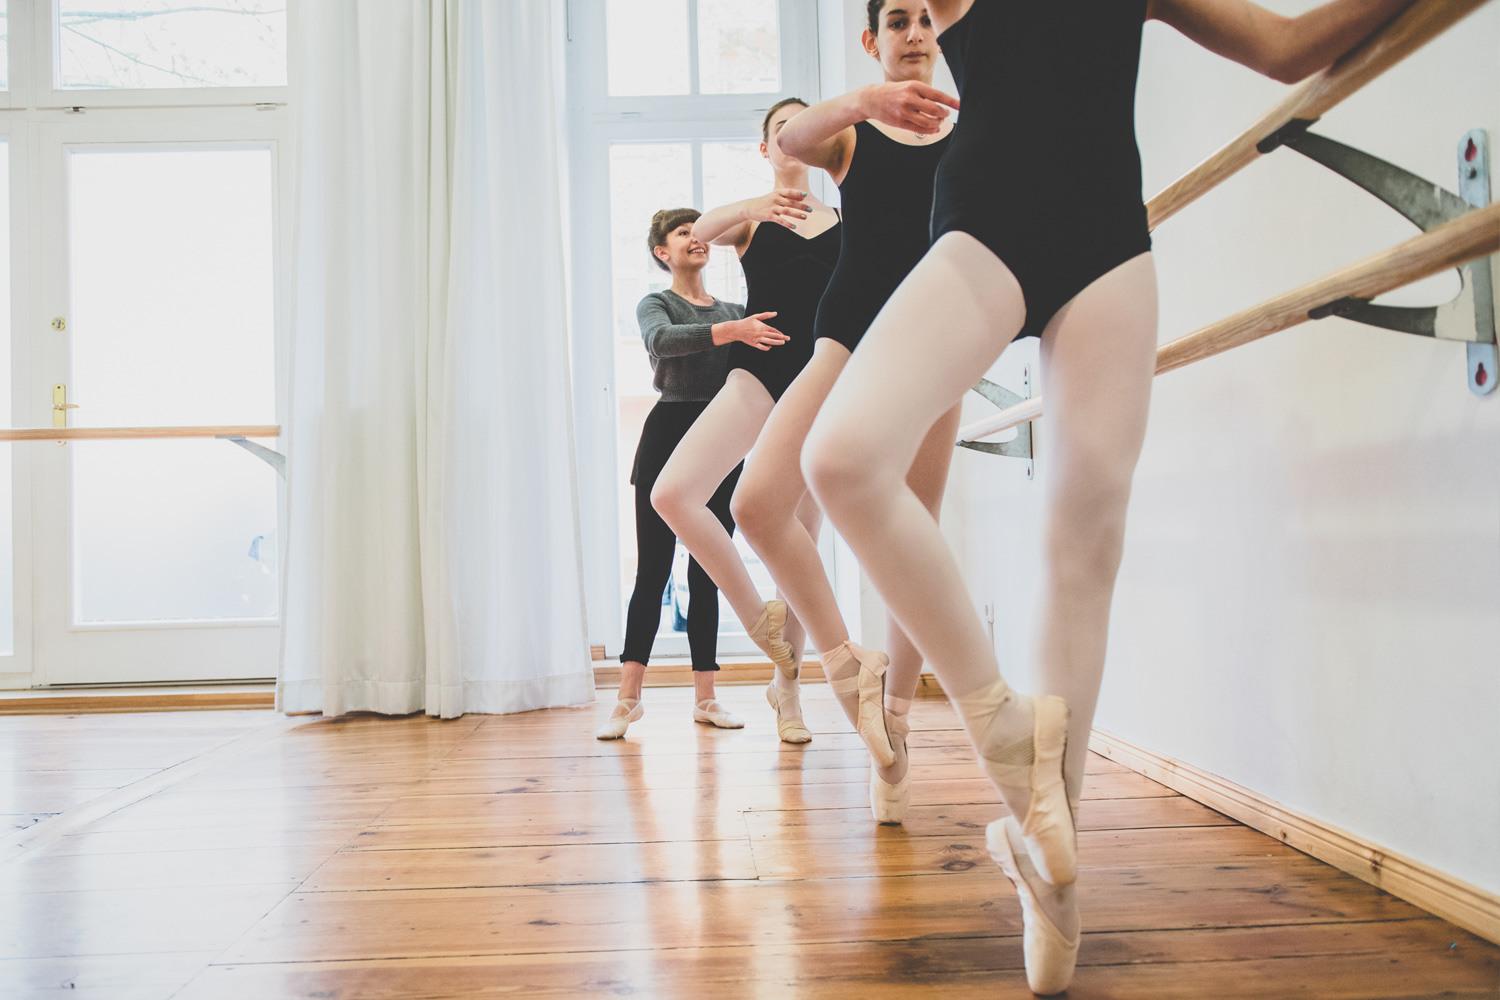 Copy of teenage girls at ballet barre in pointe work class